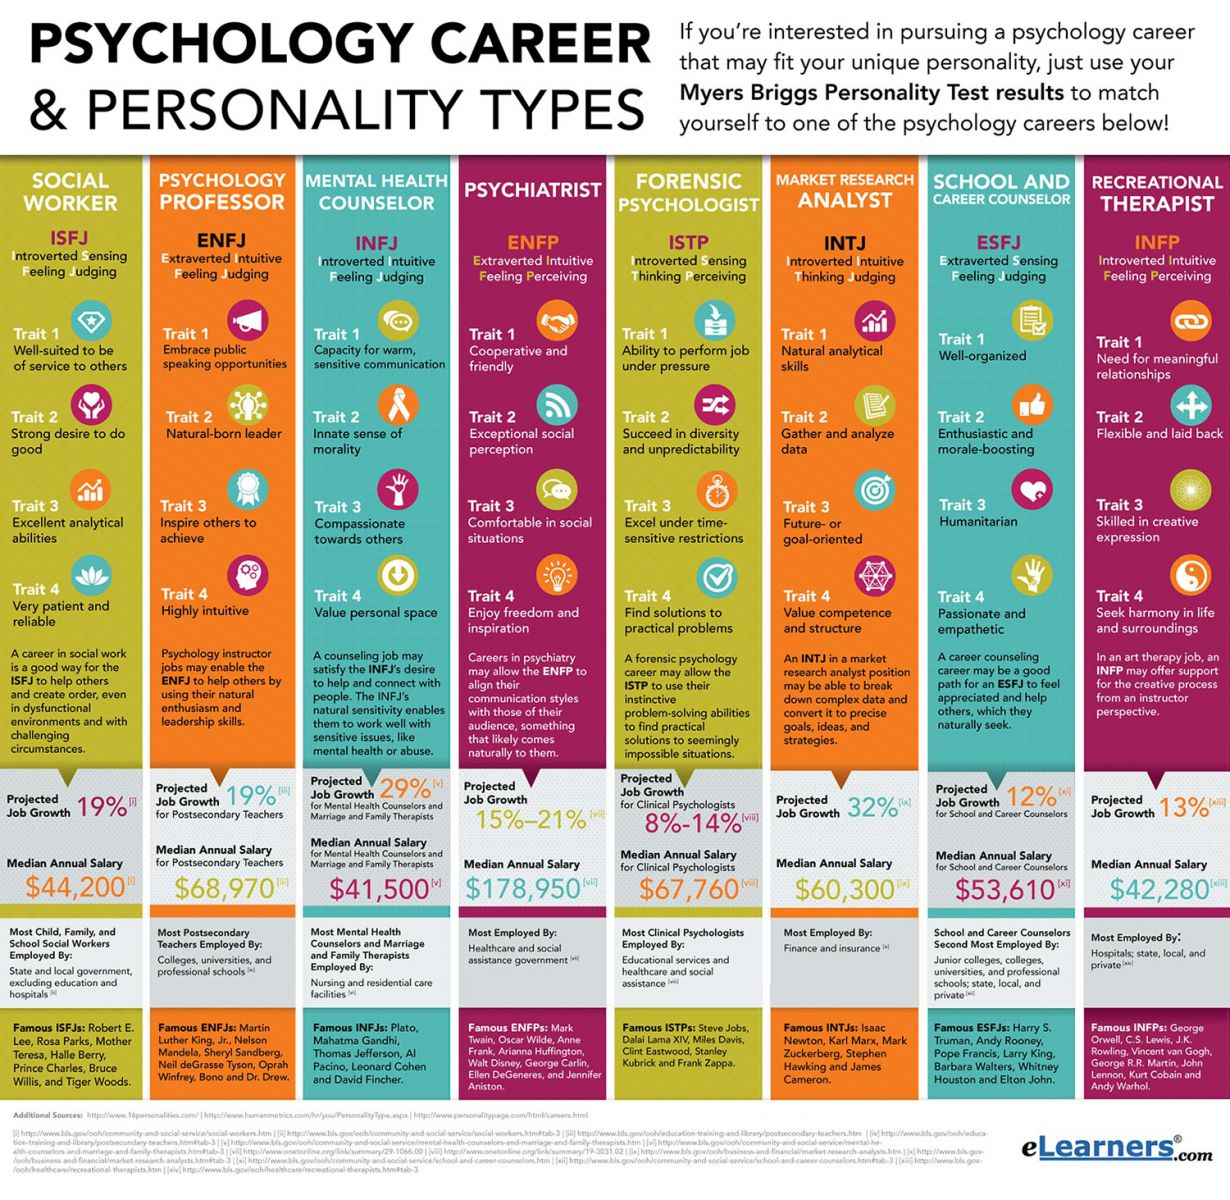 Psychology Personality Types and Related Careers